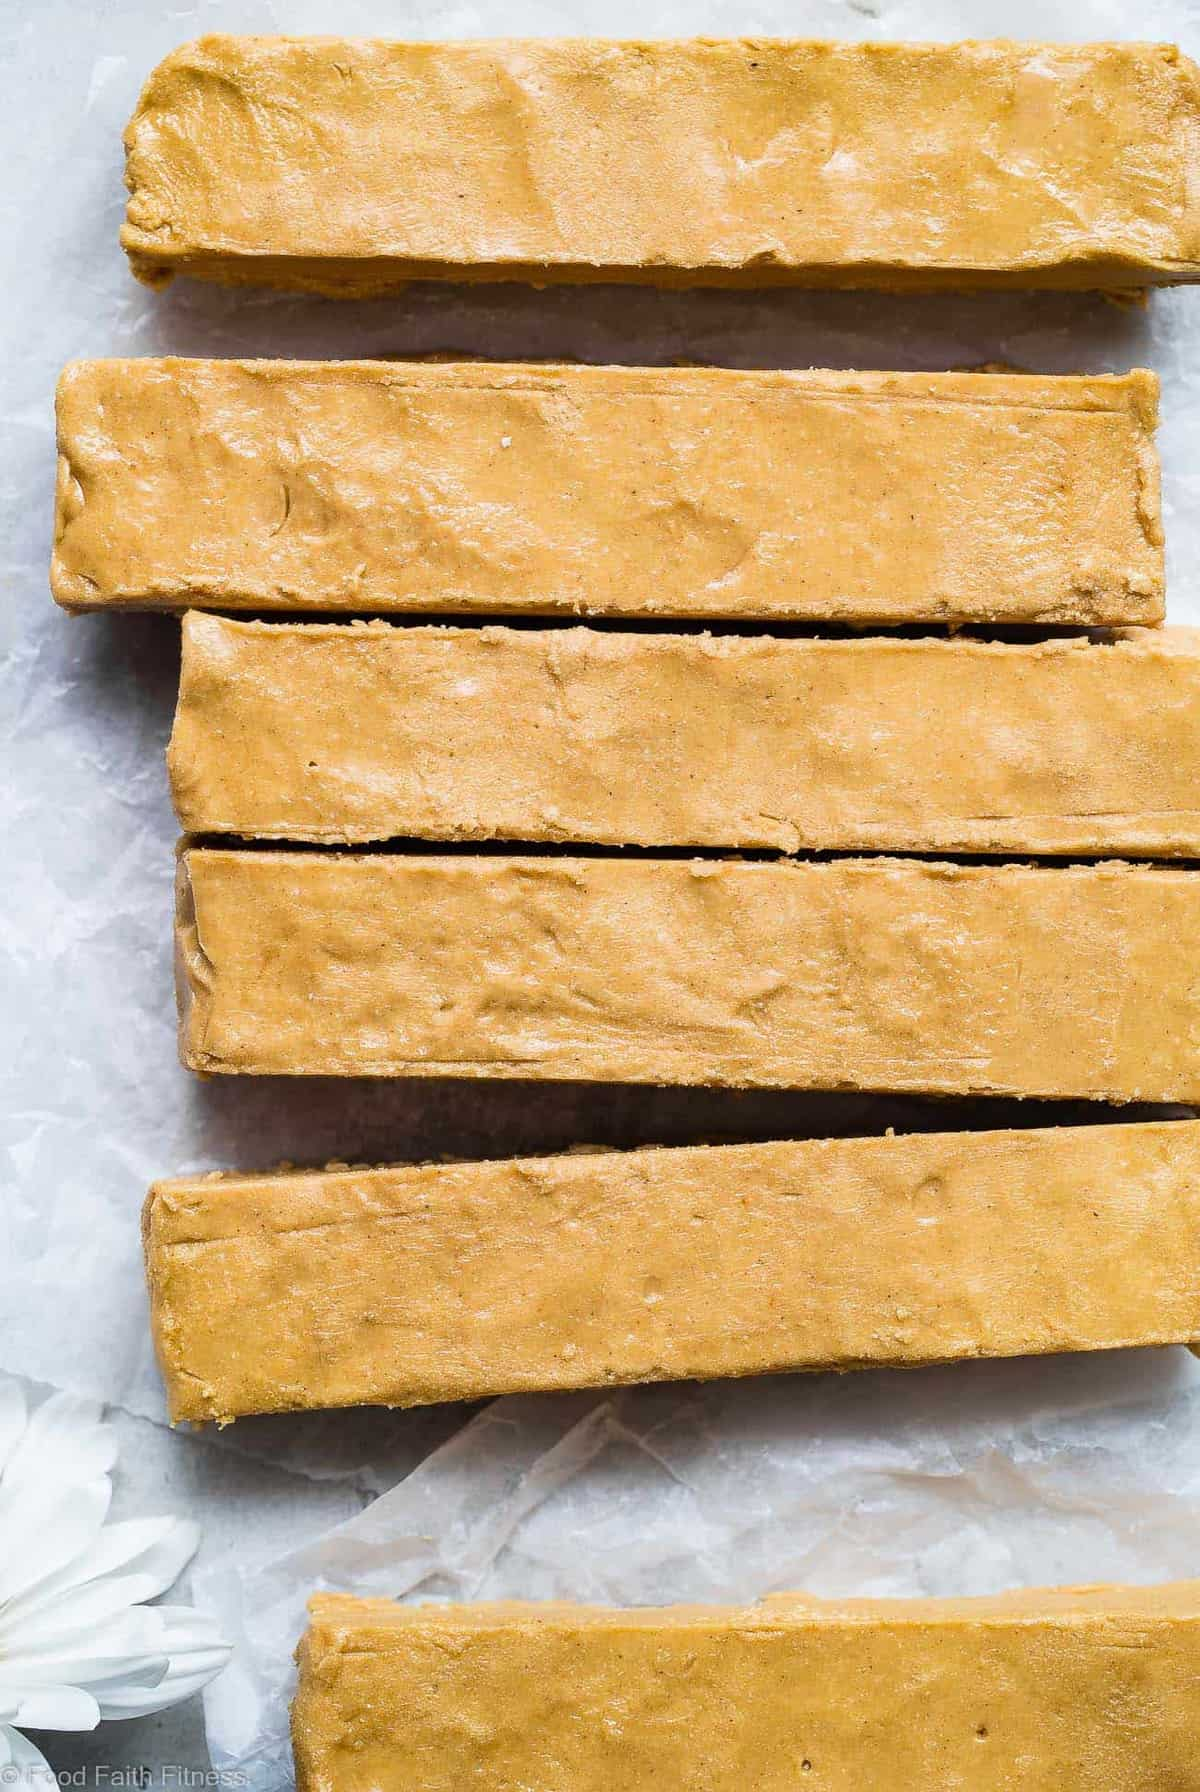 Homemade Perfect Bars -This homemade Perfect Bar Recipe tastes exactly like the store bought version, and is only 5 ingredients and so easy to make! Gluten free and healthy with a paleo option! | #Foodfaithfitness | #Glutenfree #Paleo #Healthy #Dairyfree #Snacks